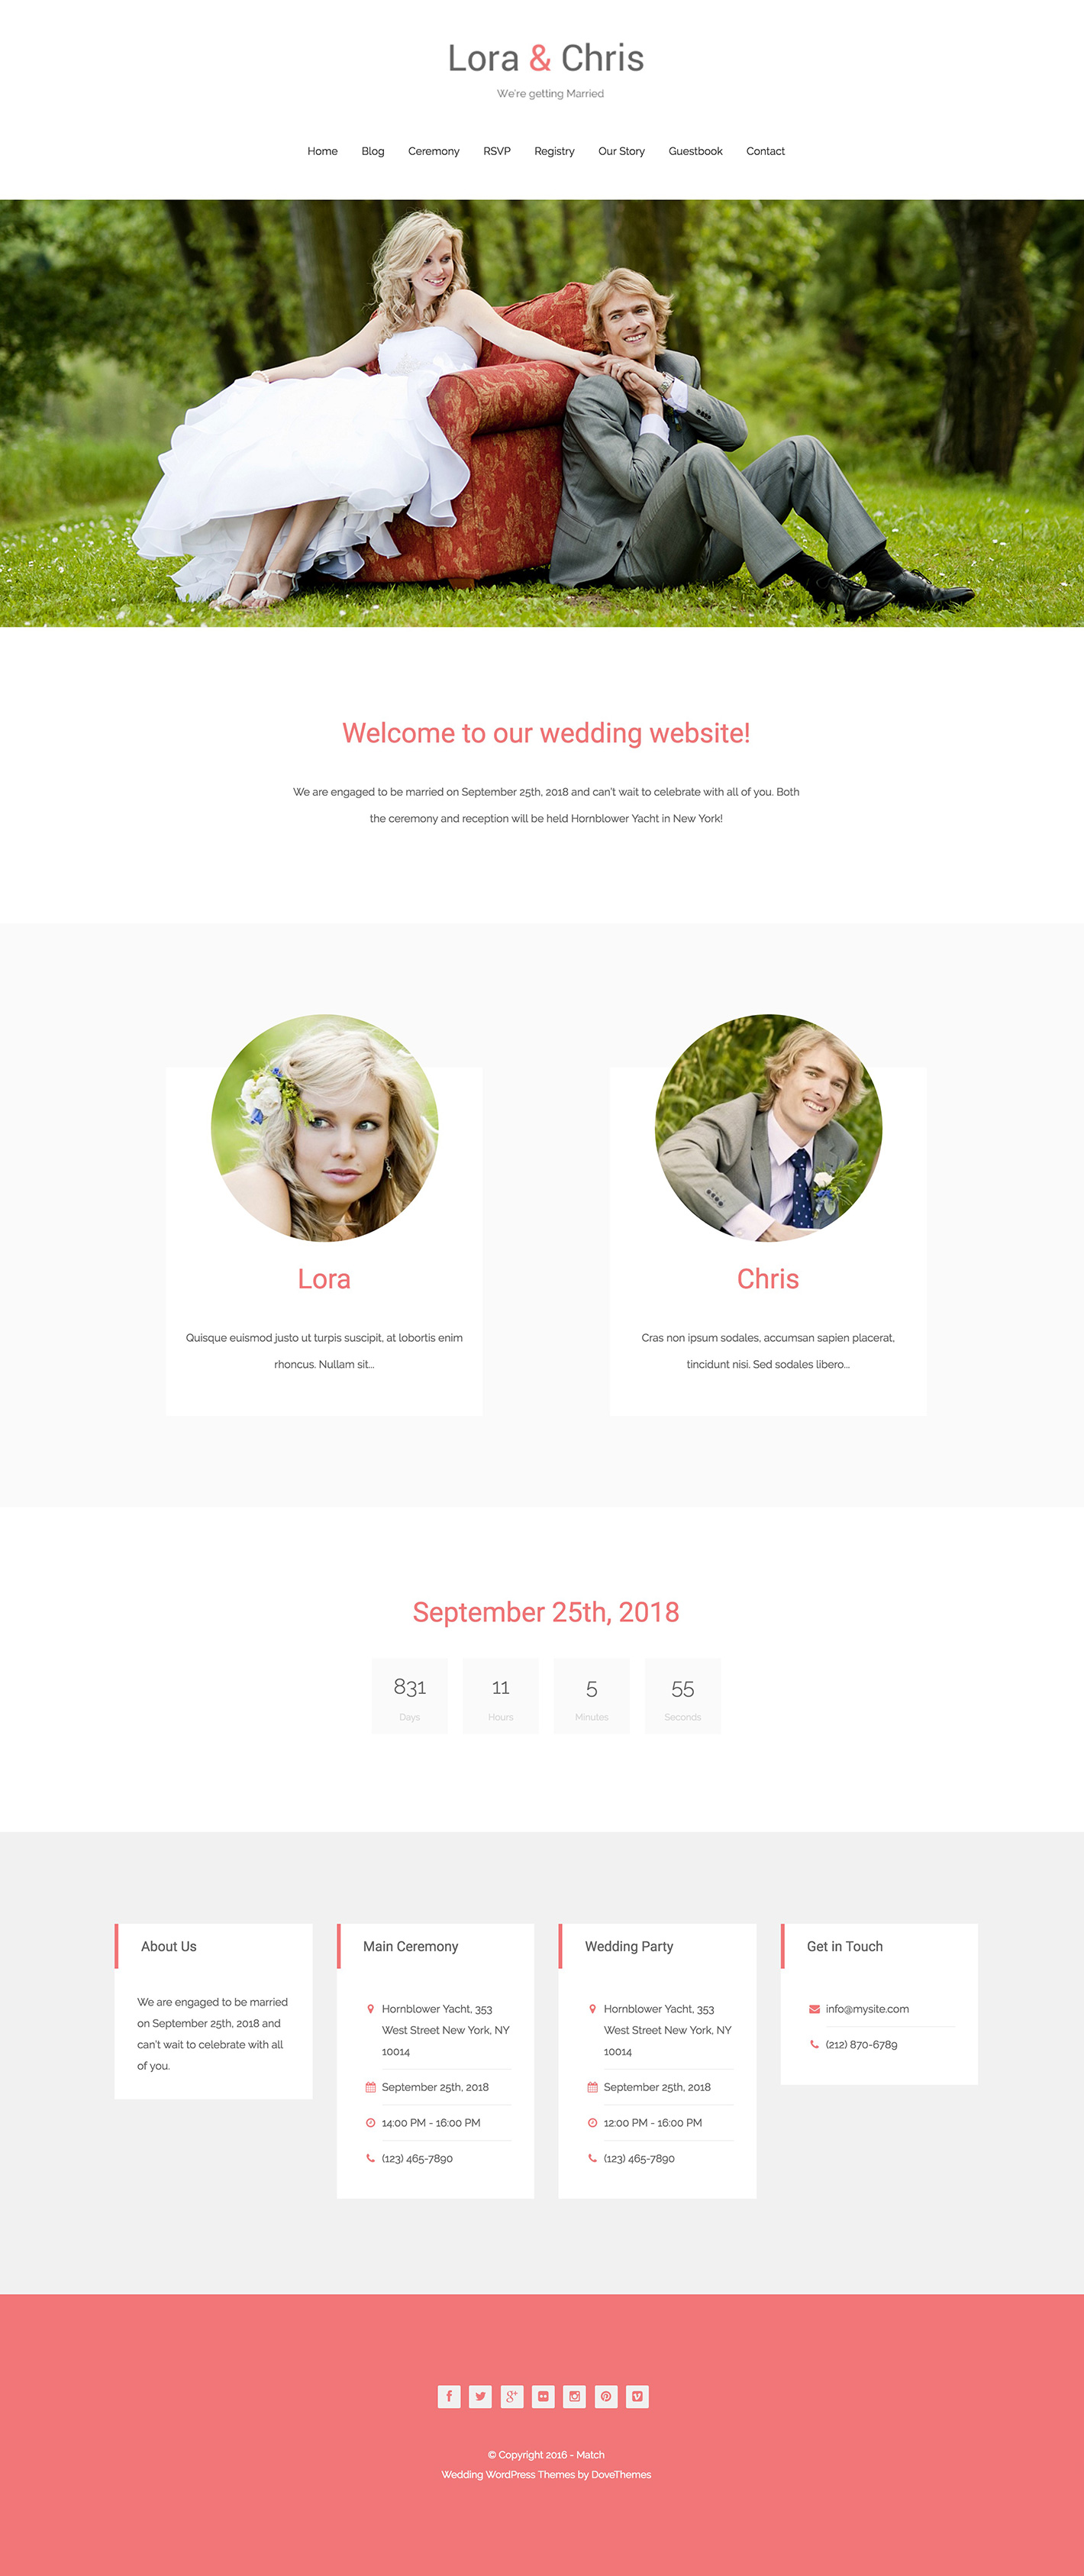 Match - Wedding WordPress Theme on DoveThemes